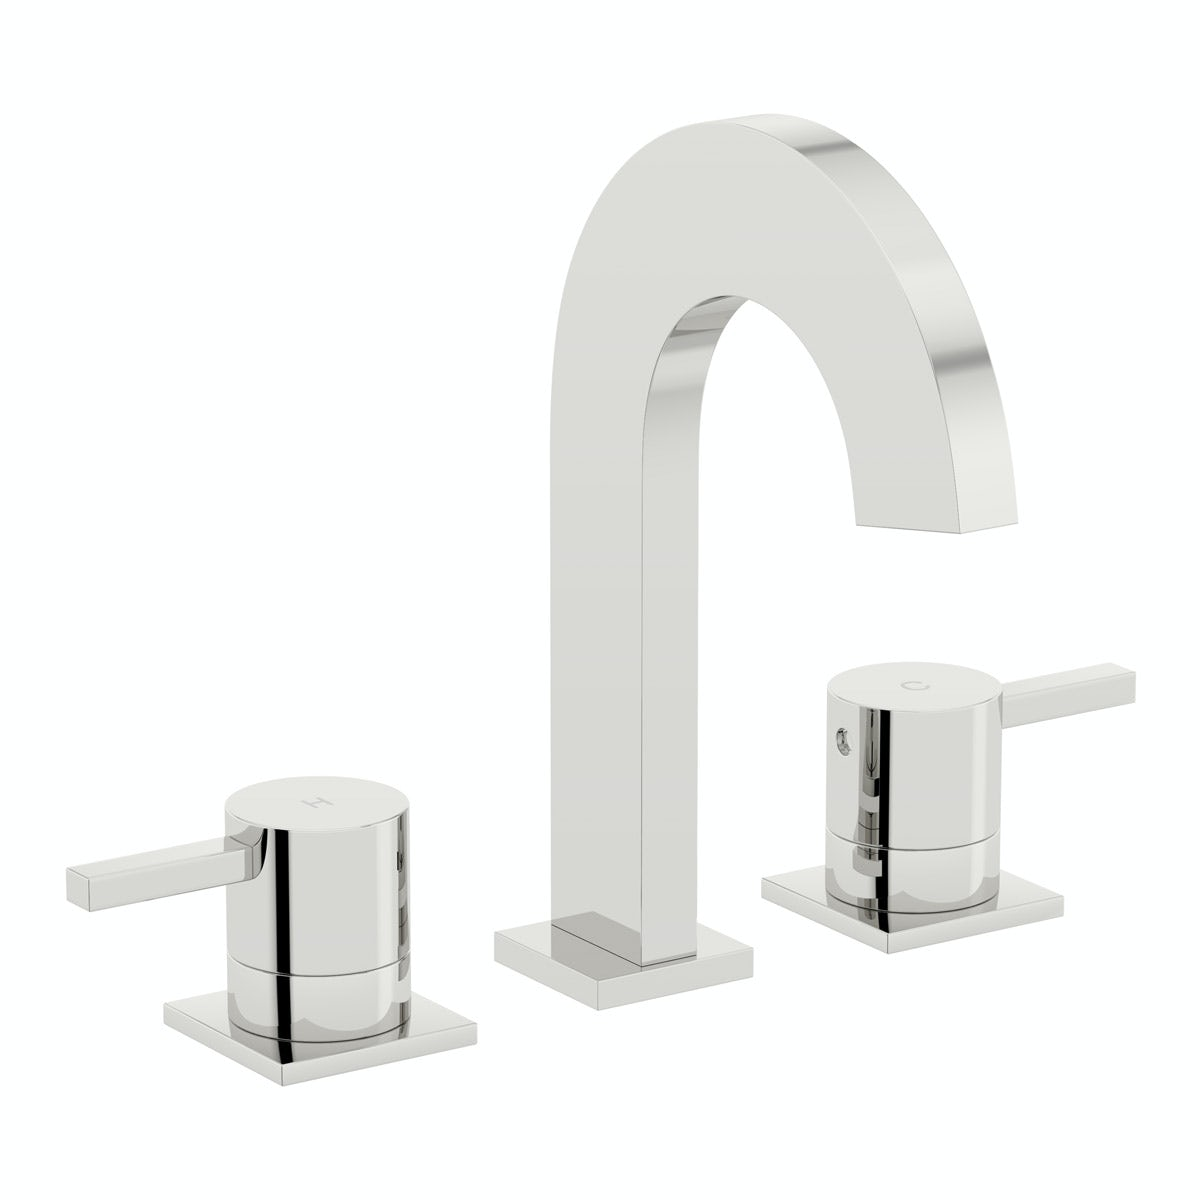 Mode Harrison 3 tap hole bath mixer tap offer pack